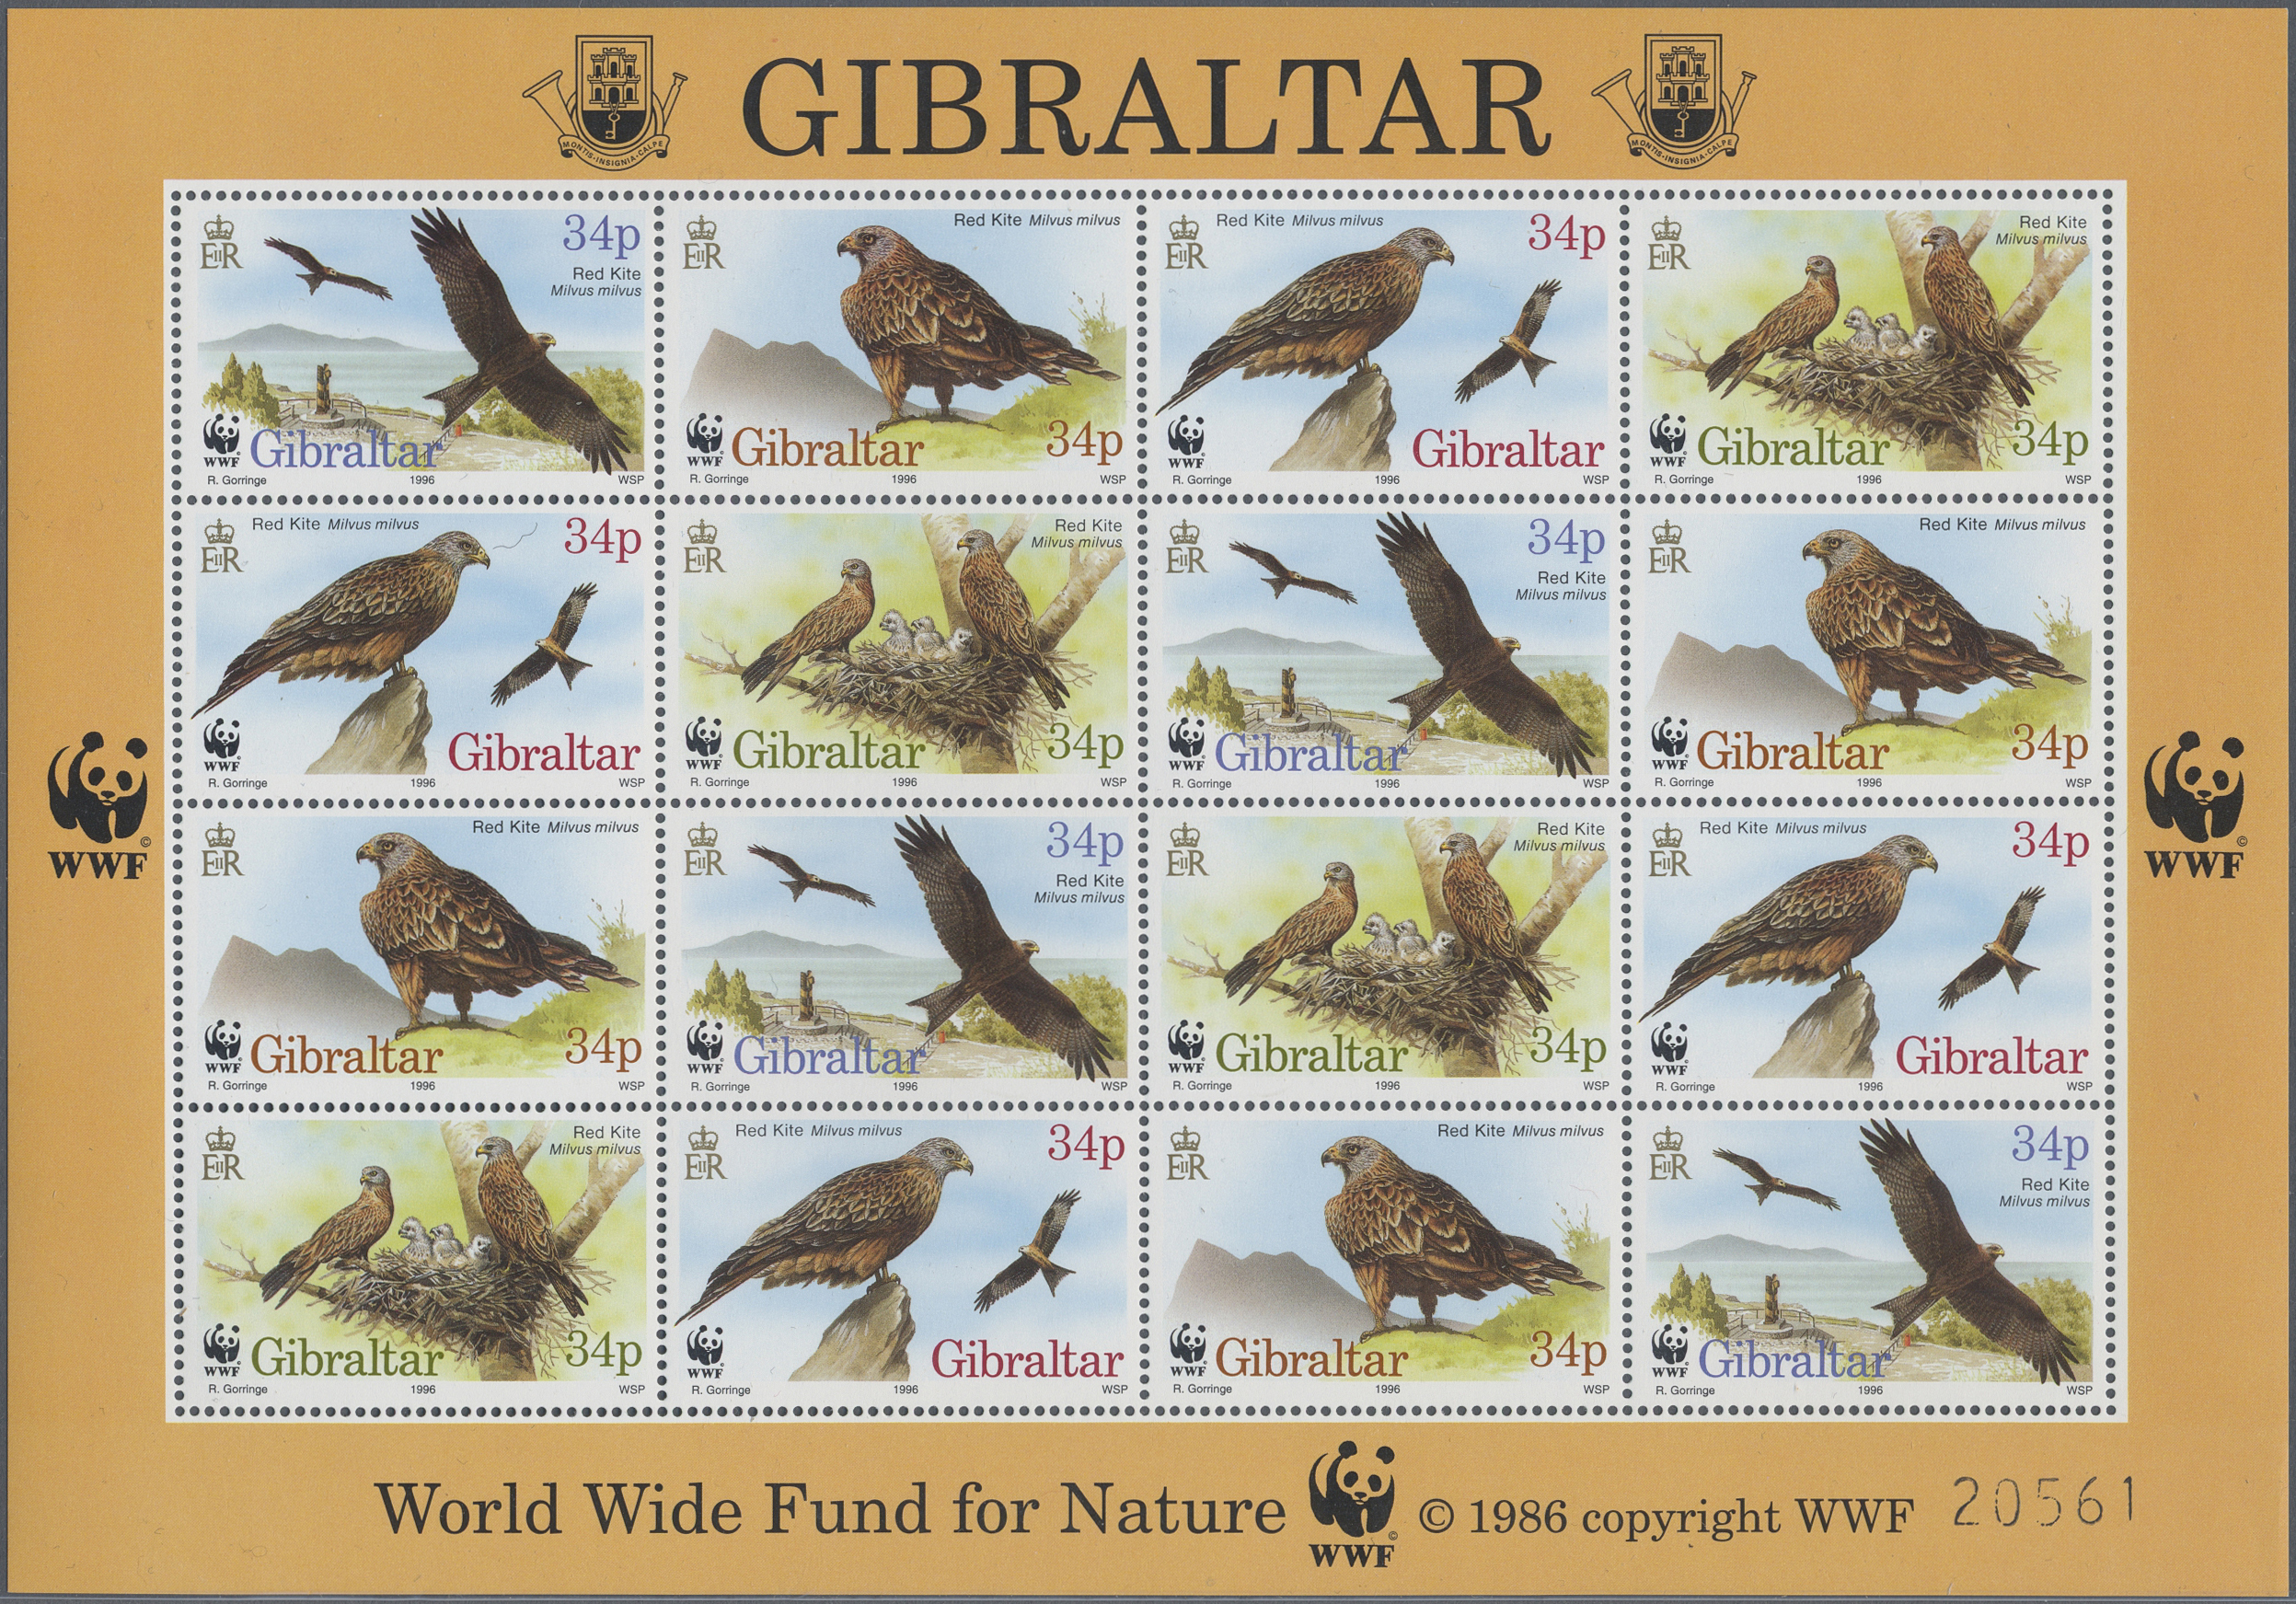 Lot 01805 - Gibraltar  -  Auktionshaus Christoph Gärtner GmbH & Co. KG Special Auction 26.- 28. May 2020 Day 2 Collections Part 2